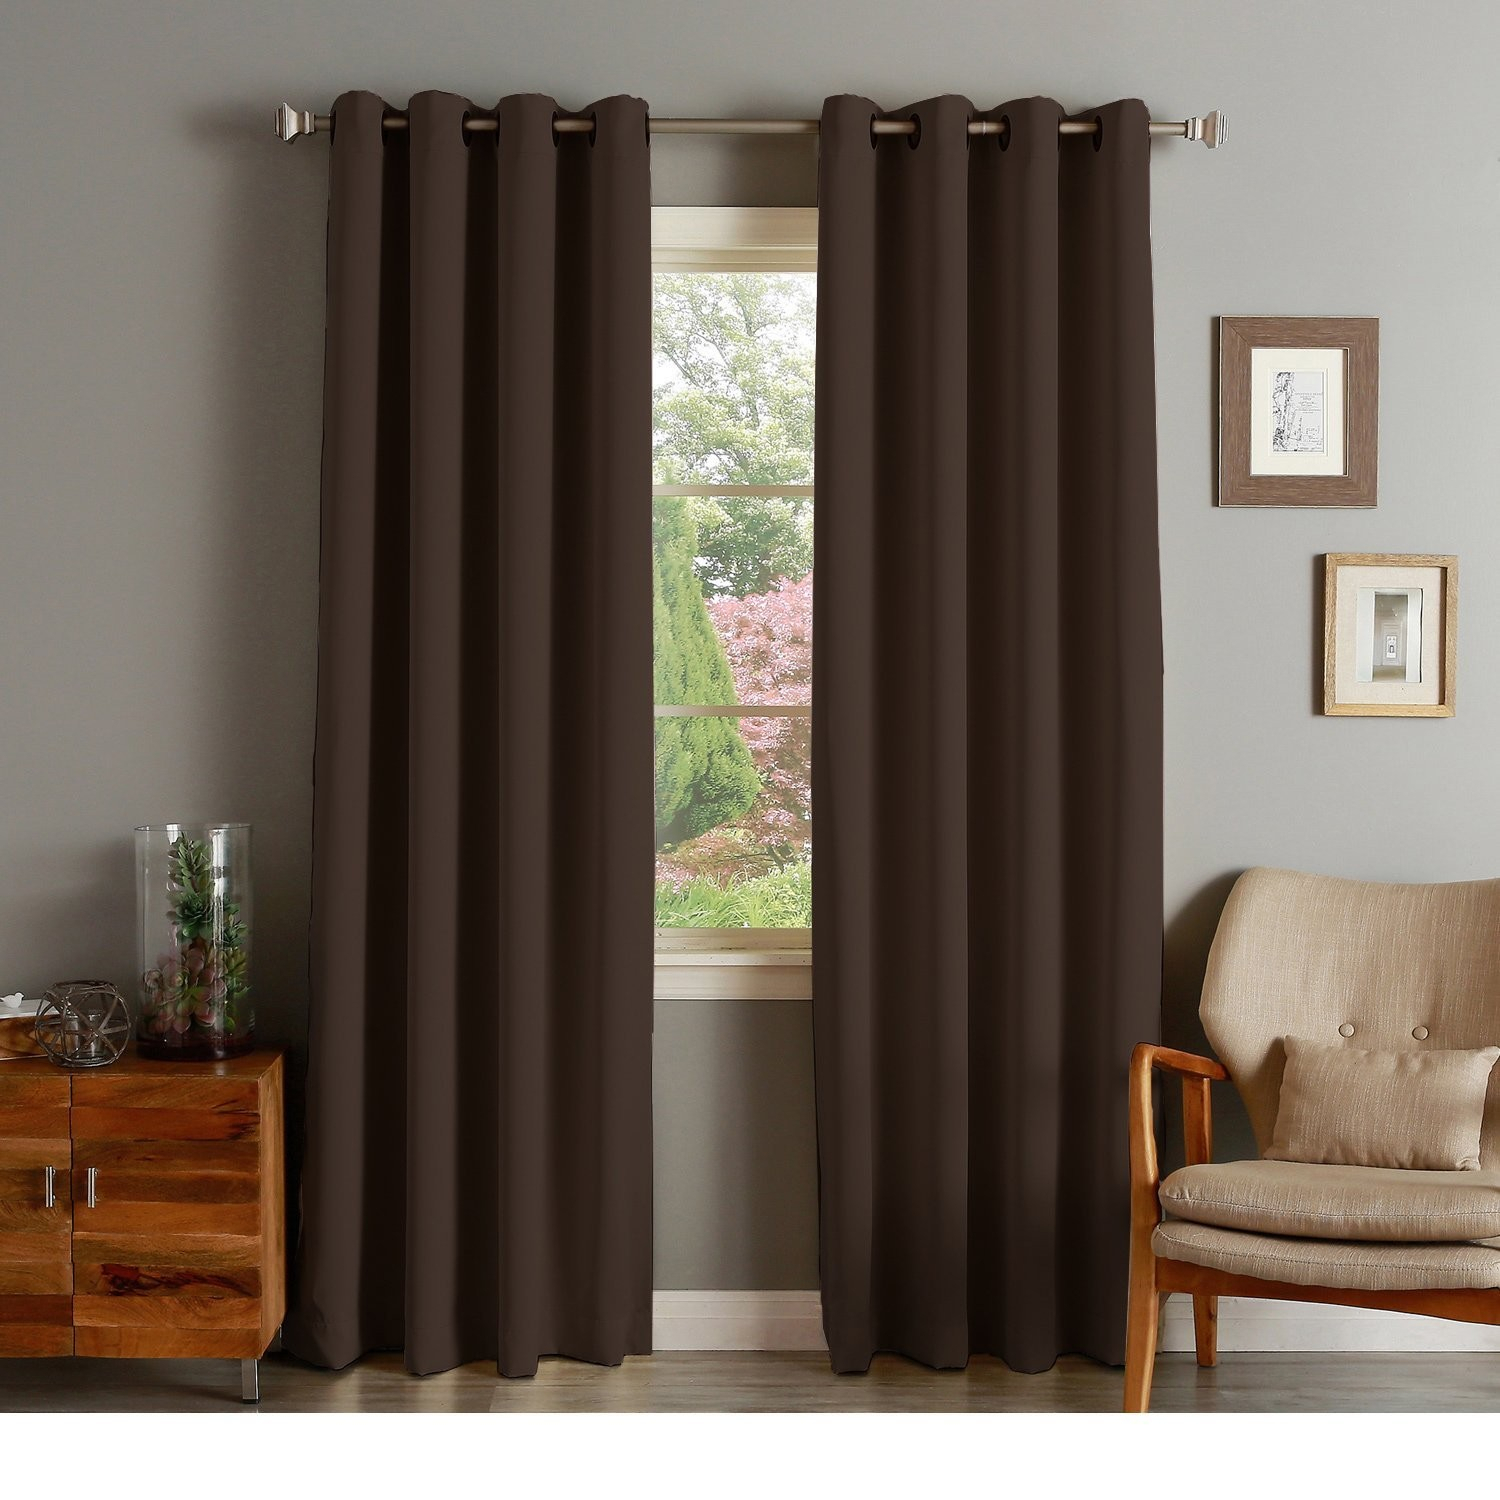 Rhf Blackout Thermal Insulated Curtain – Antique Bronze Inside Antique Silver Grommet Top Thermal Insulated Blackout Curtain Panel Pairs (View 8 of 20)